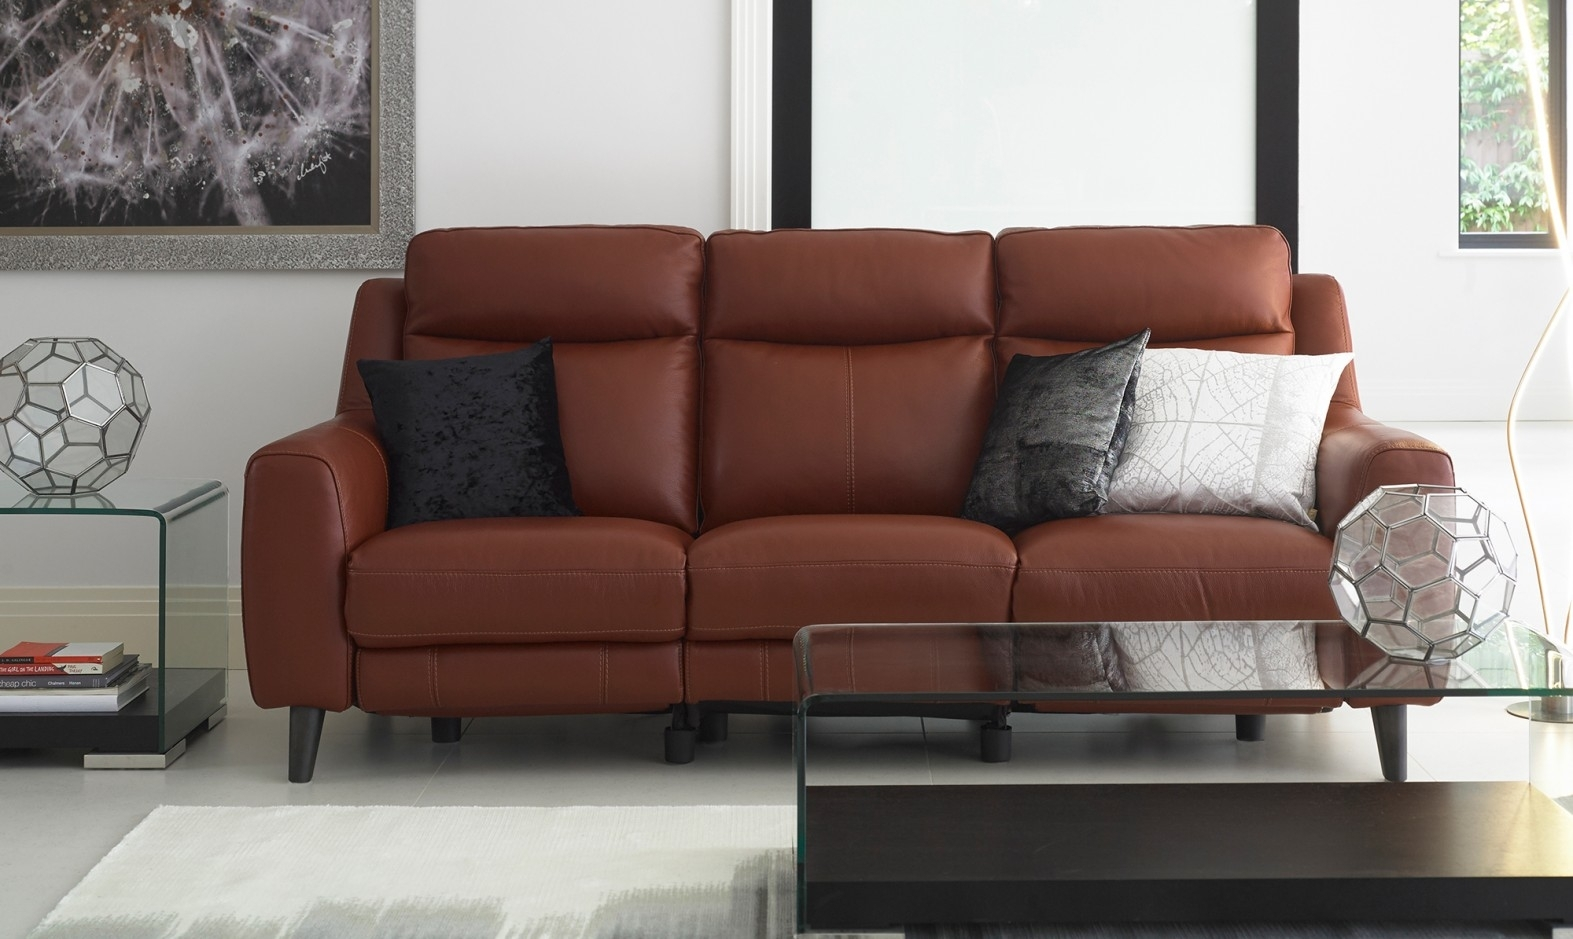 Recliner Sofas In Leather & Fabric | Fishpools With Recliner Sofas (Image 8 of 10)